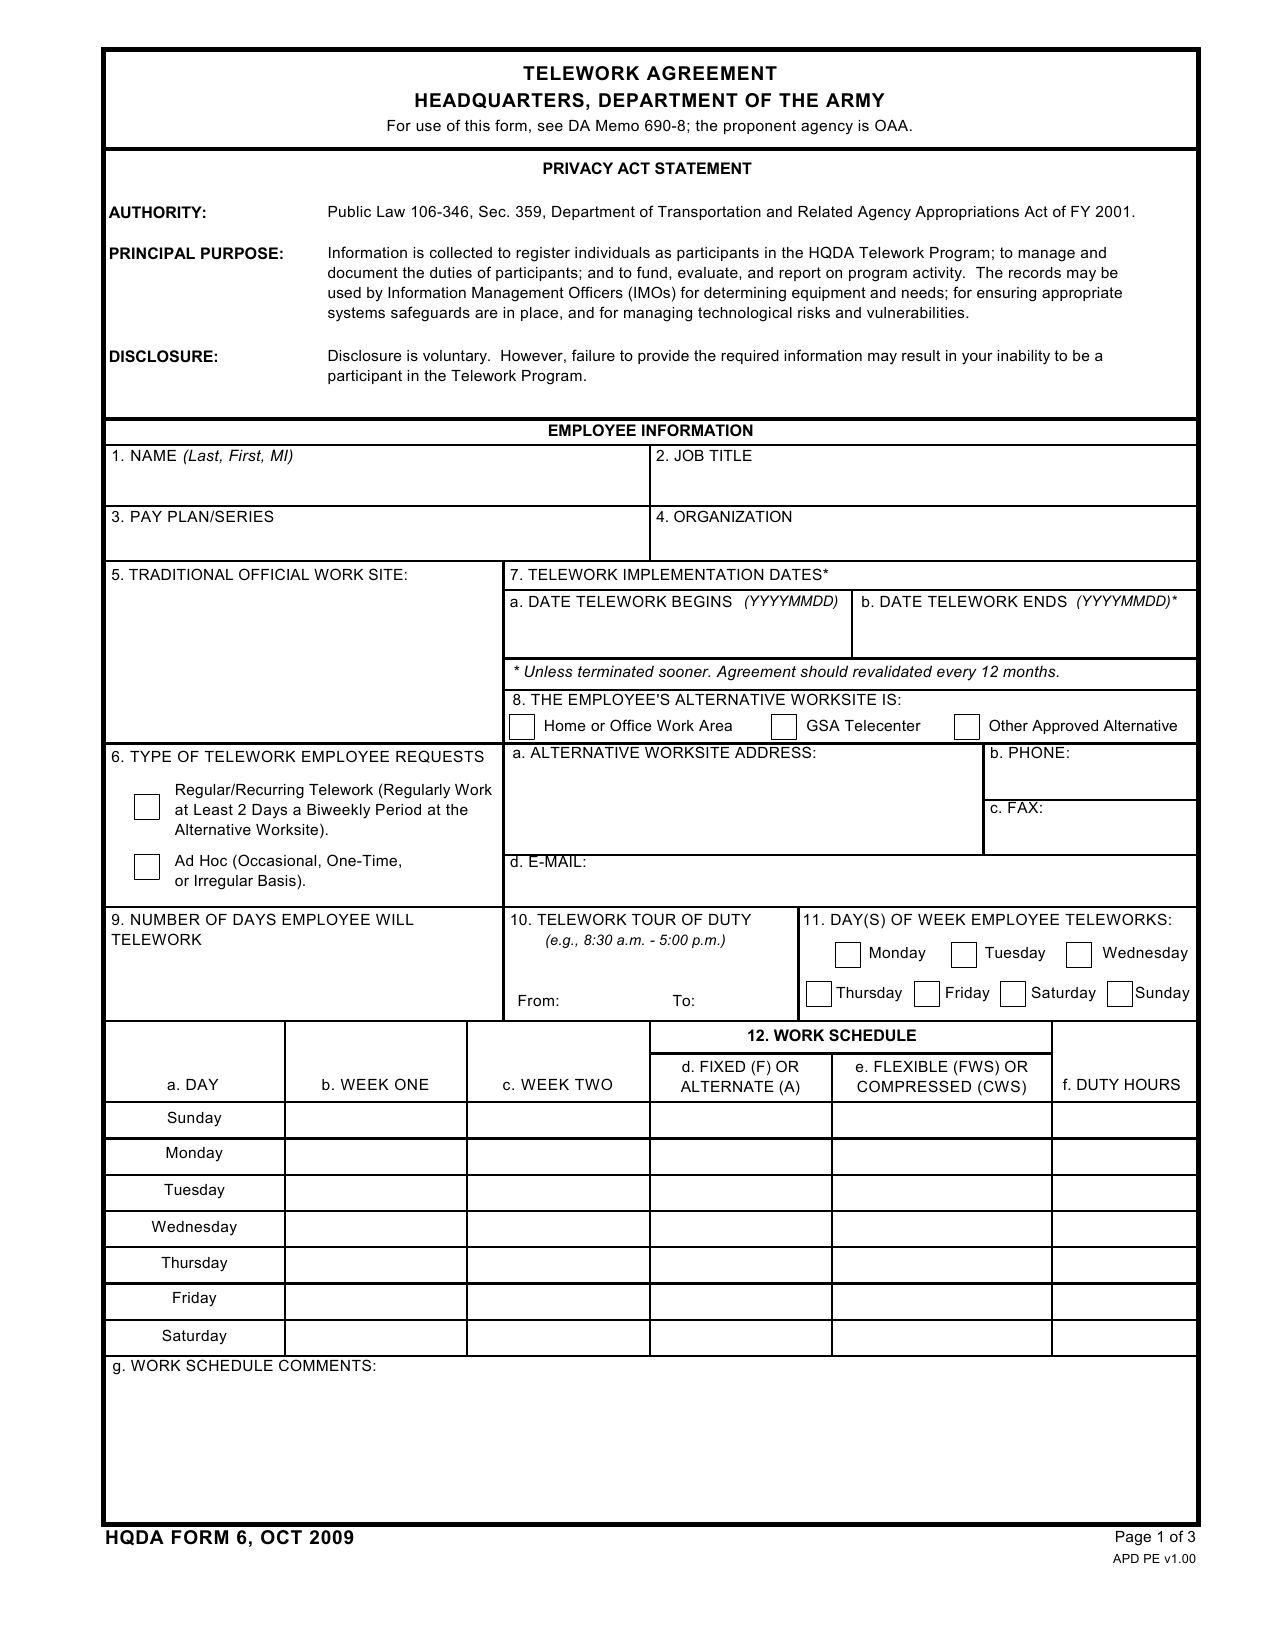 Download Da Form Hqda6 Telework Agreement Headquarters Department